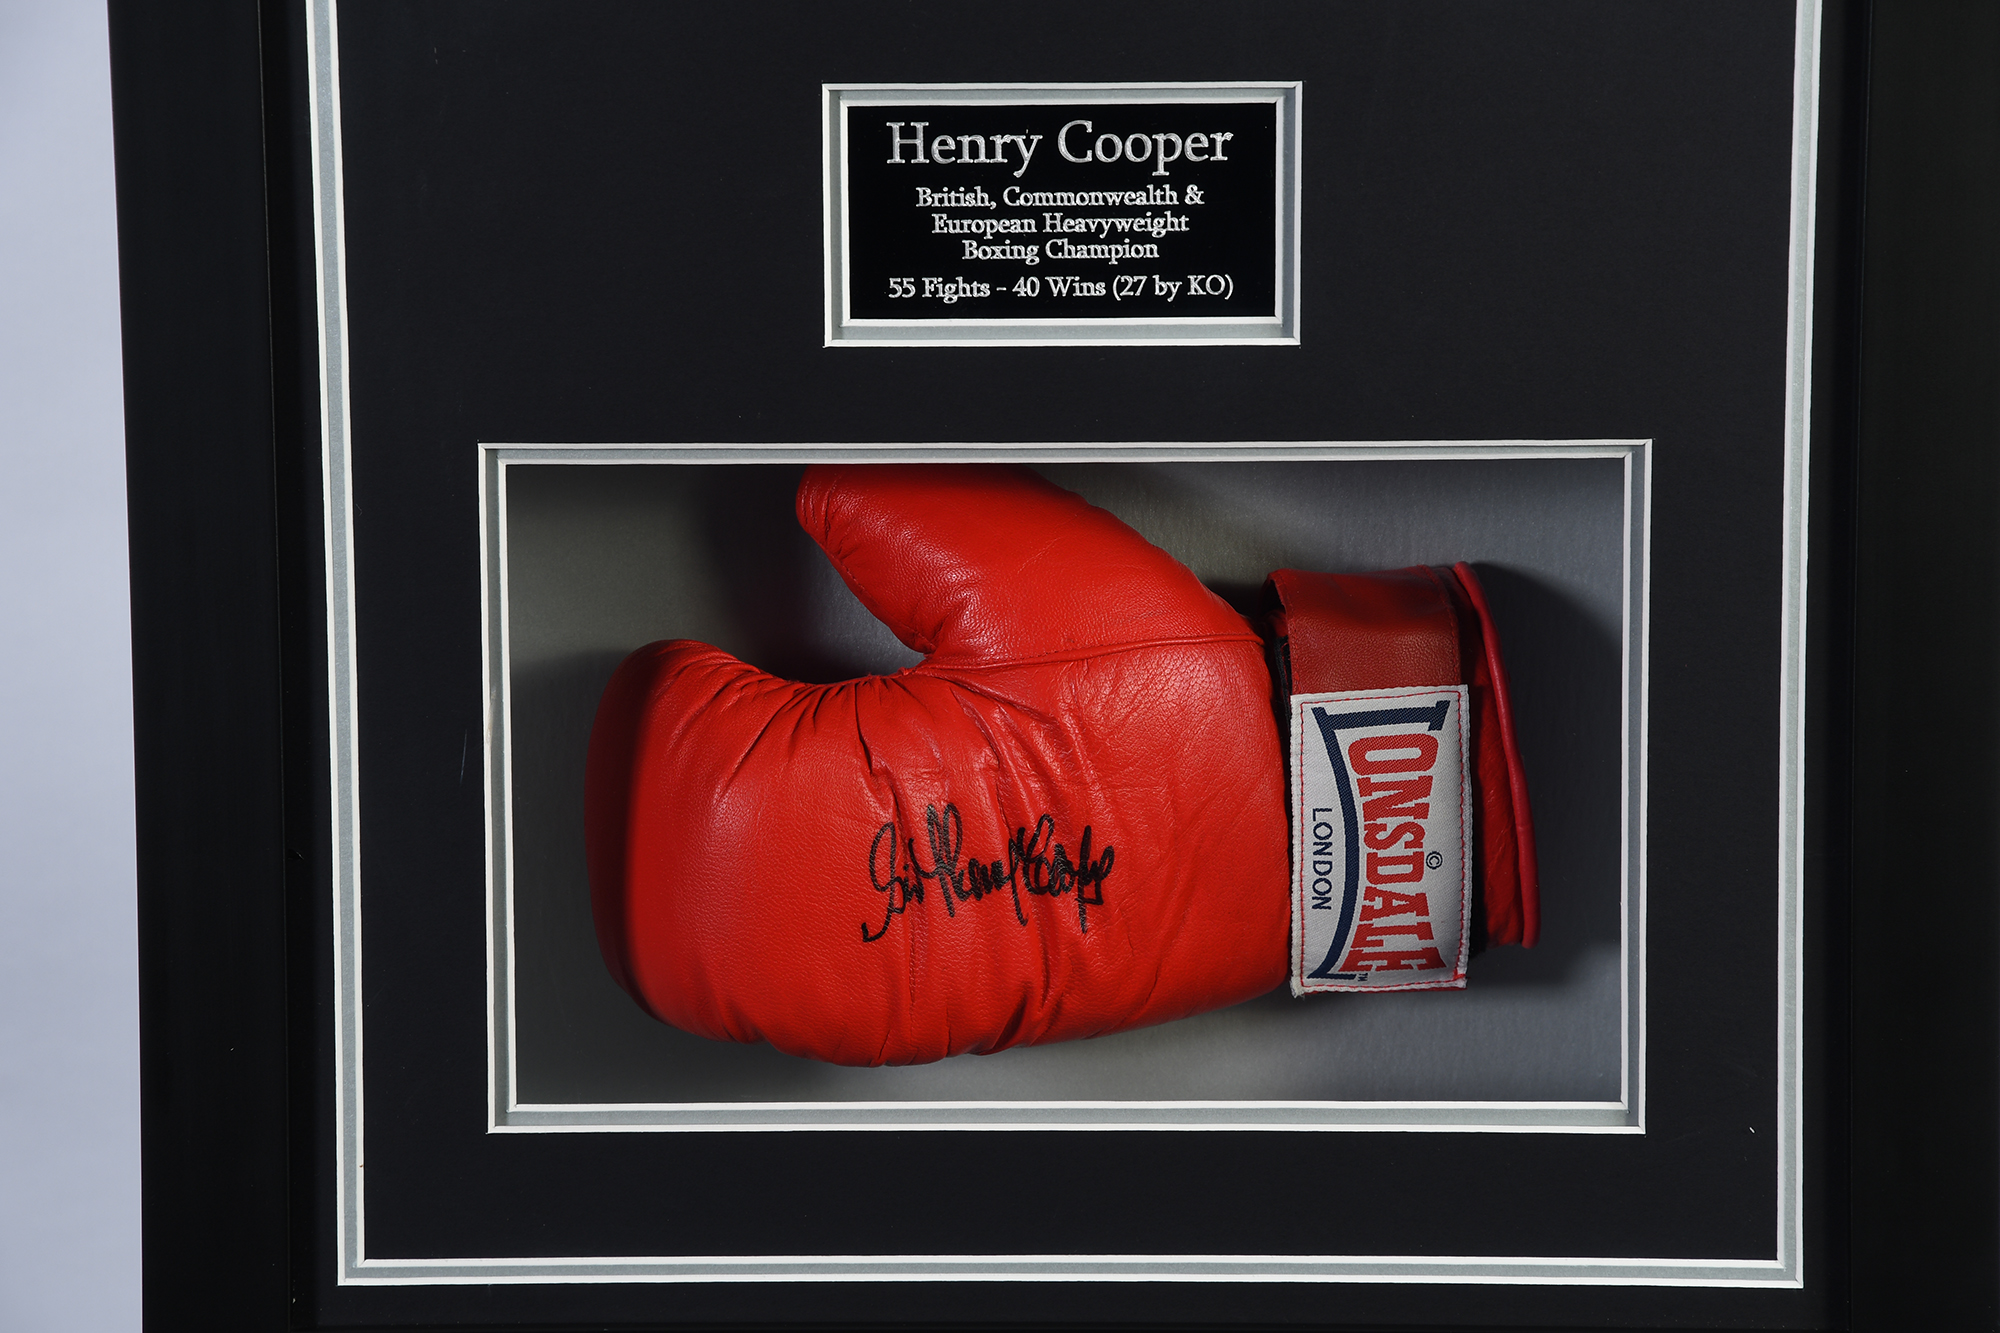 Henry Cooper Signed Glove - Image 2 of 2